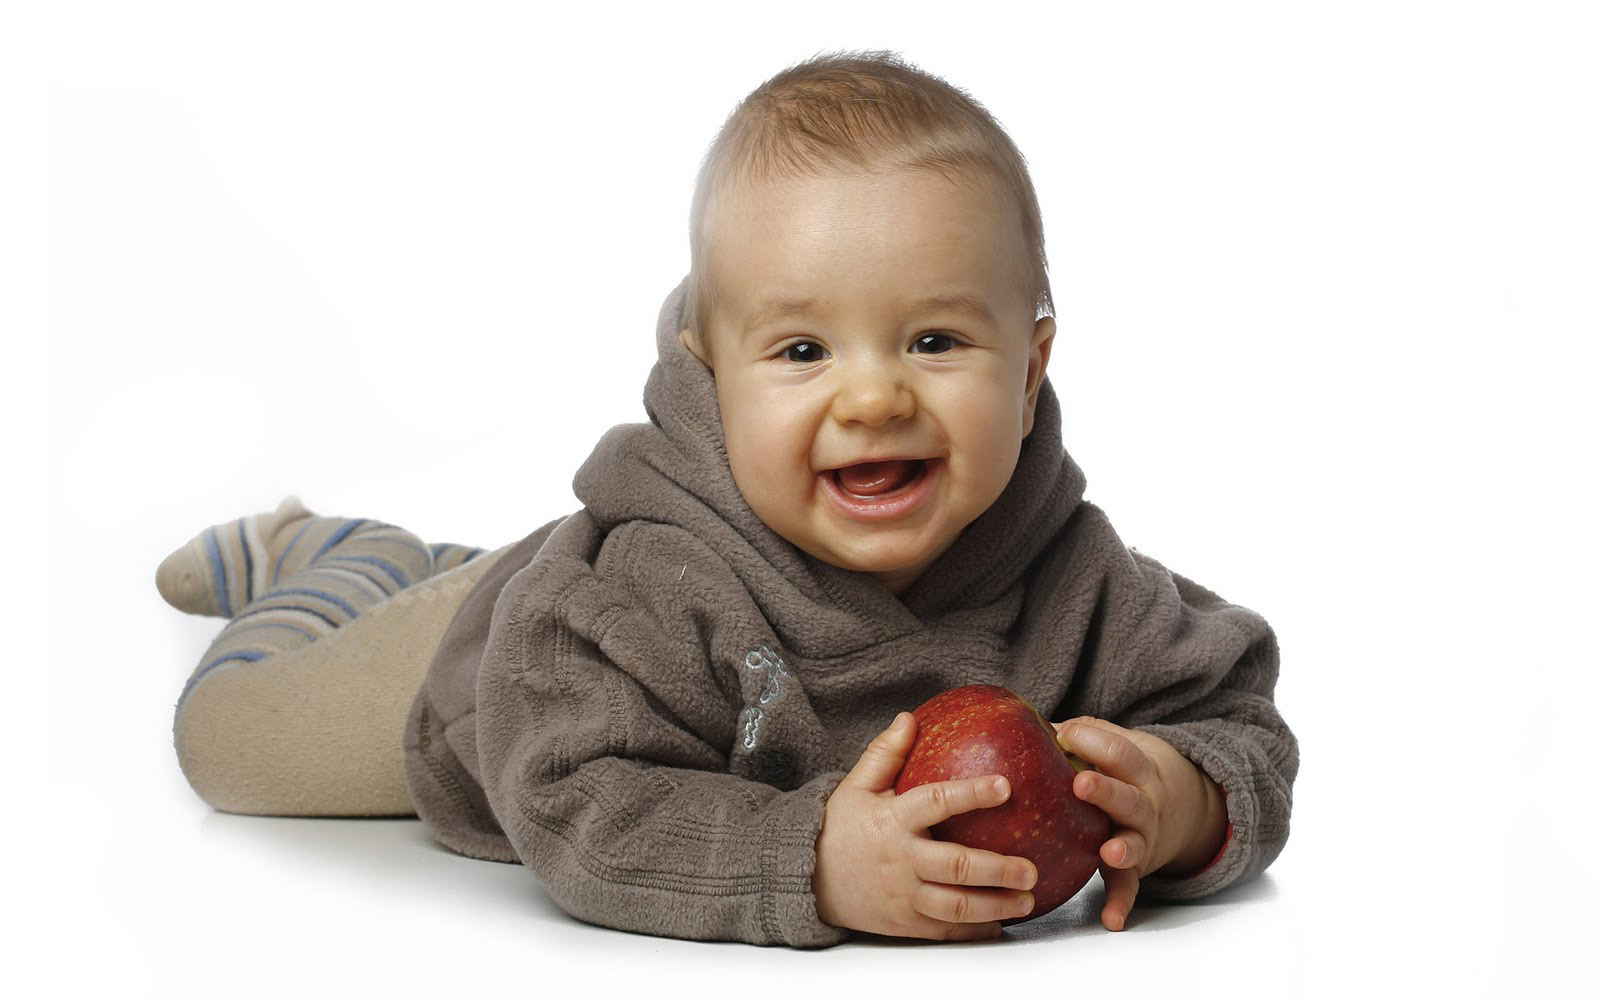 Beautiful Cute Baby Wallpapers: Baby Wallpapers